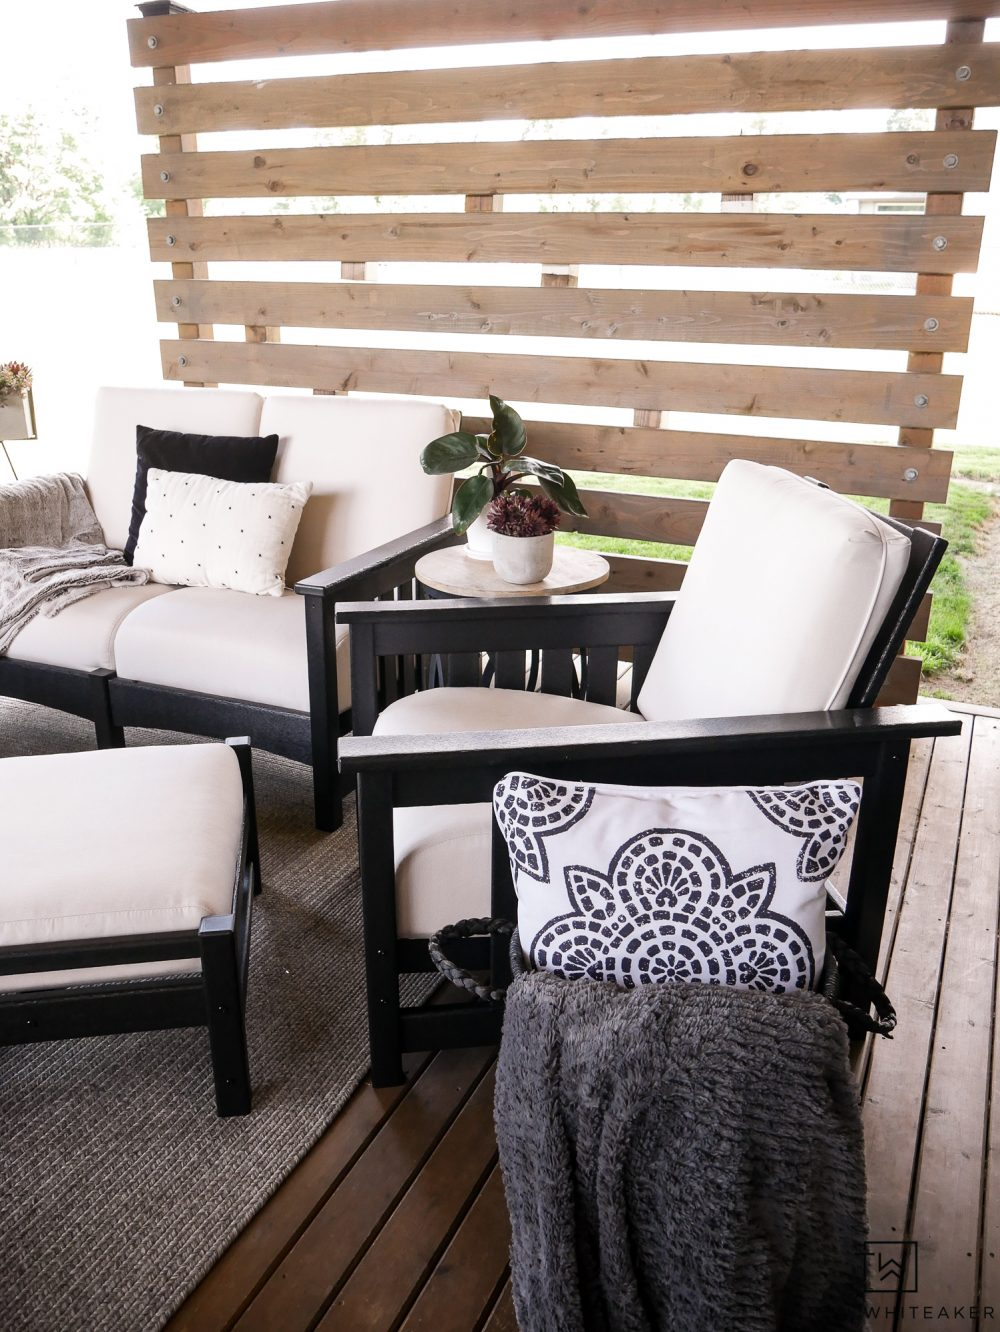 Outdoor Chair with matching Ottoman! Such a pretty outdoor living space and privacy screen.